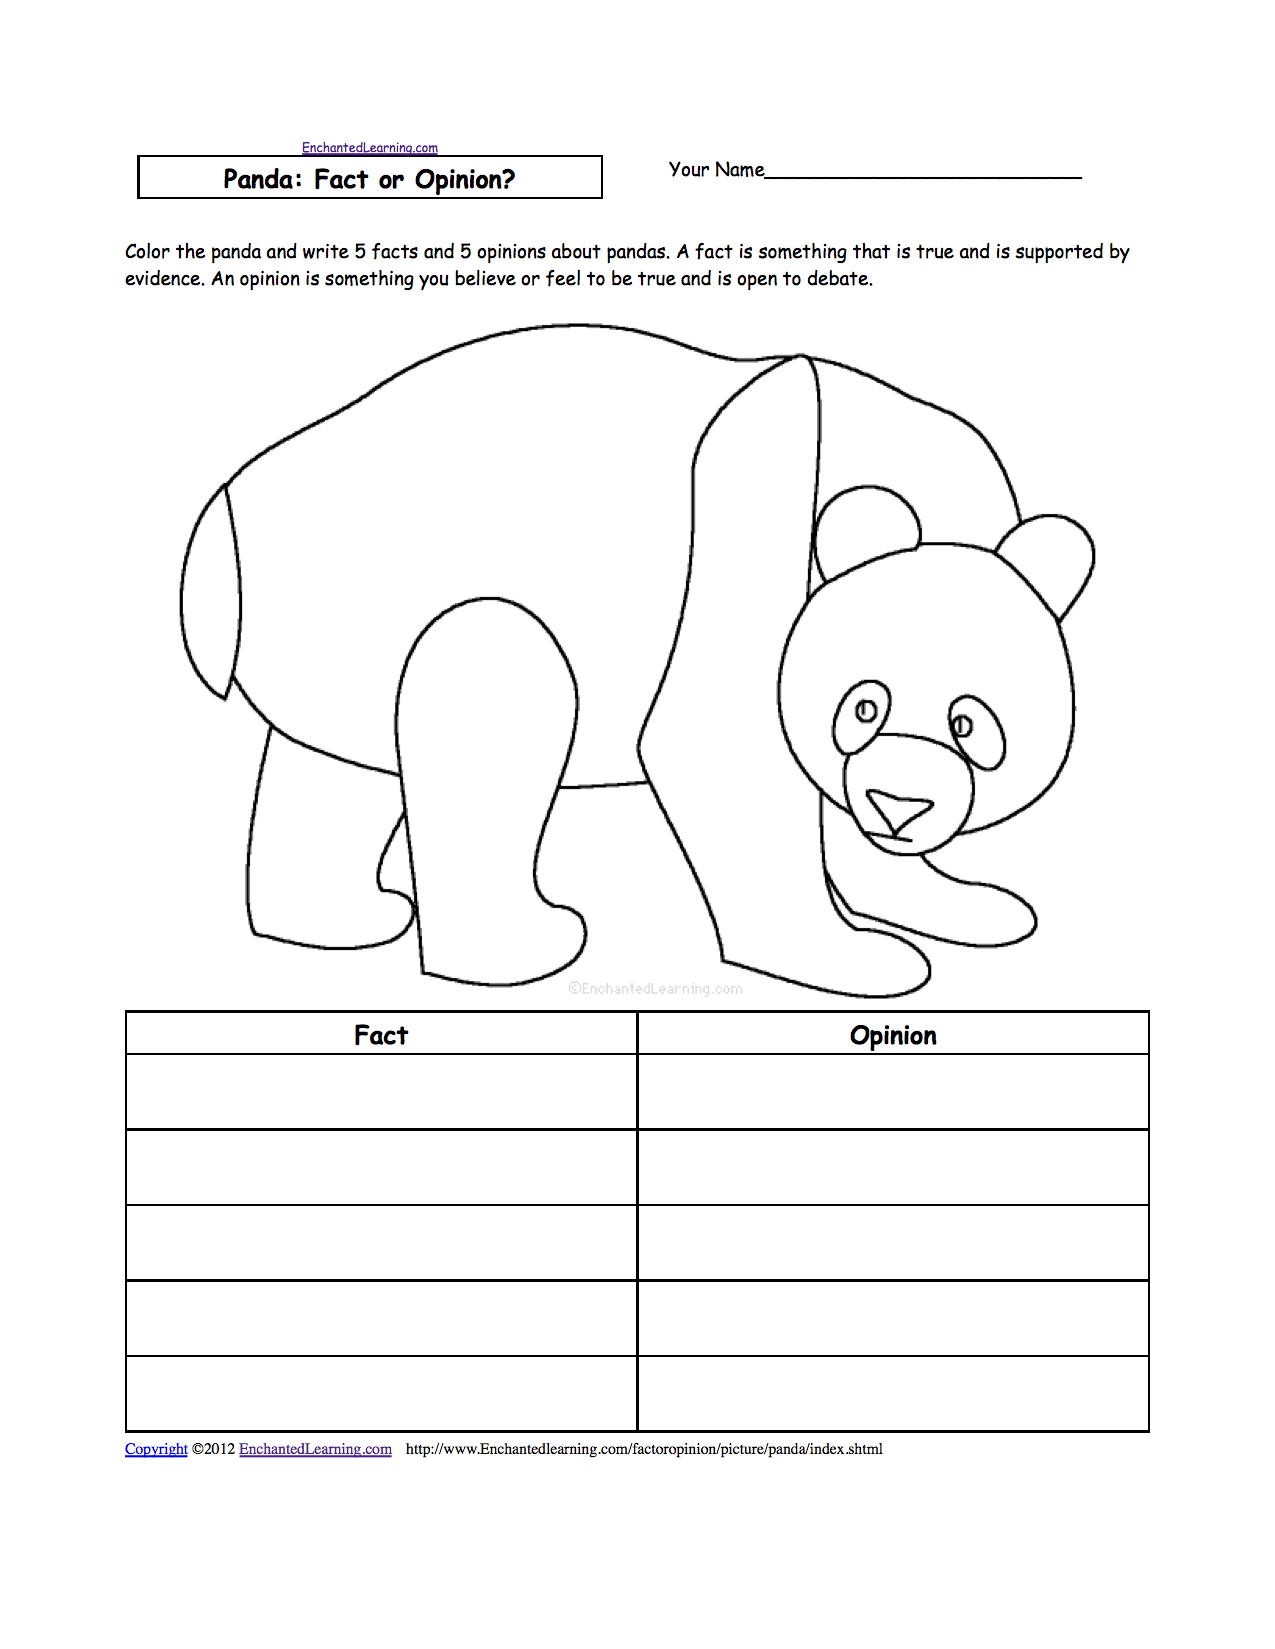 Buy essay online cheap case study analysis of panda bear toys     WWF Check Out The New Panda Bear Meets the Grim Reaper Interactive Website With  Non Album Music And Visuals   Stereogum